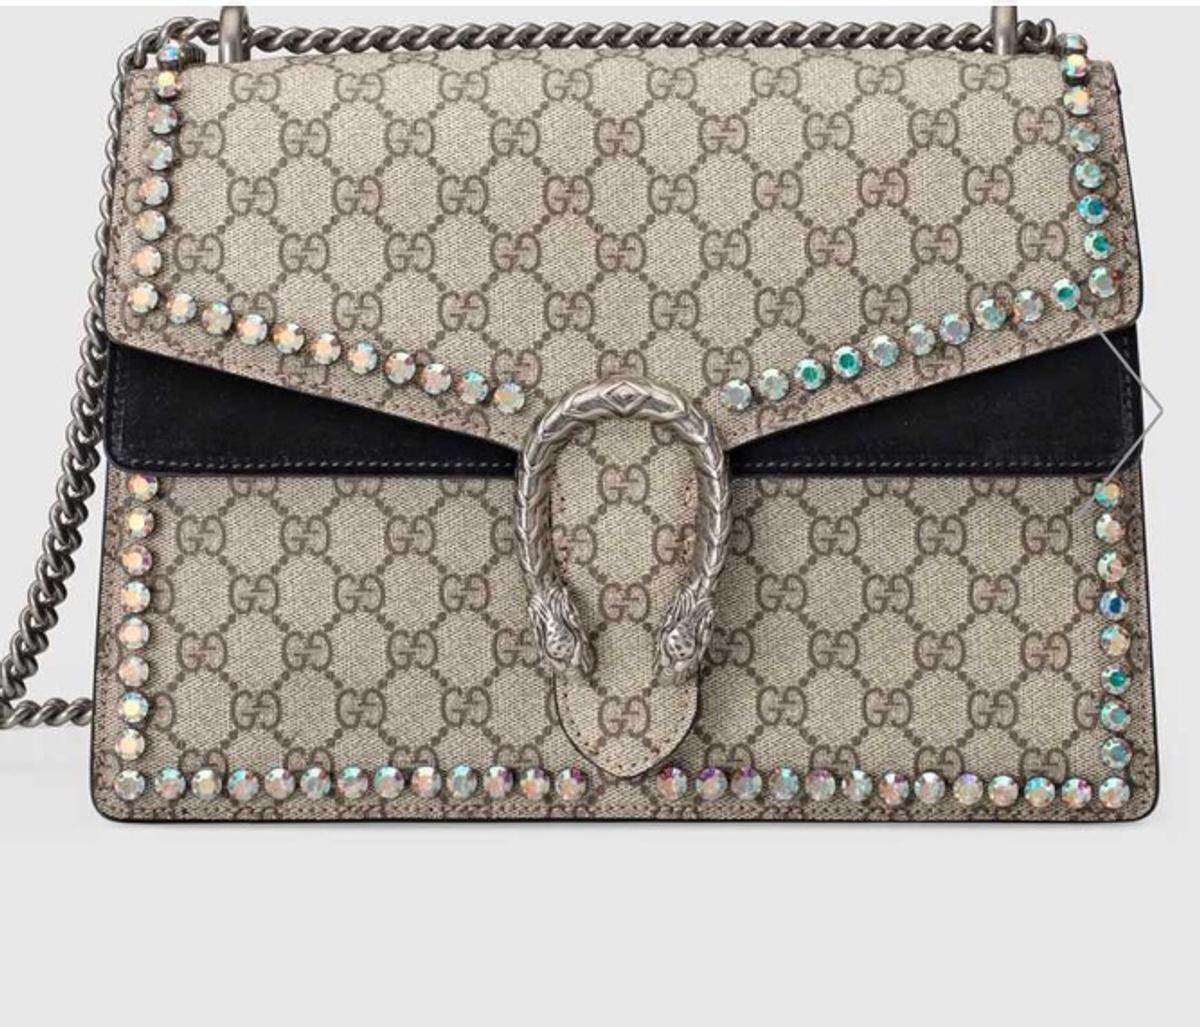 fe09587c3 Authentic GUCCI GG tote bag canvas. Description. Dionysus GG Supreme  shoulder bag with crystals. It's basically Brand new .